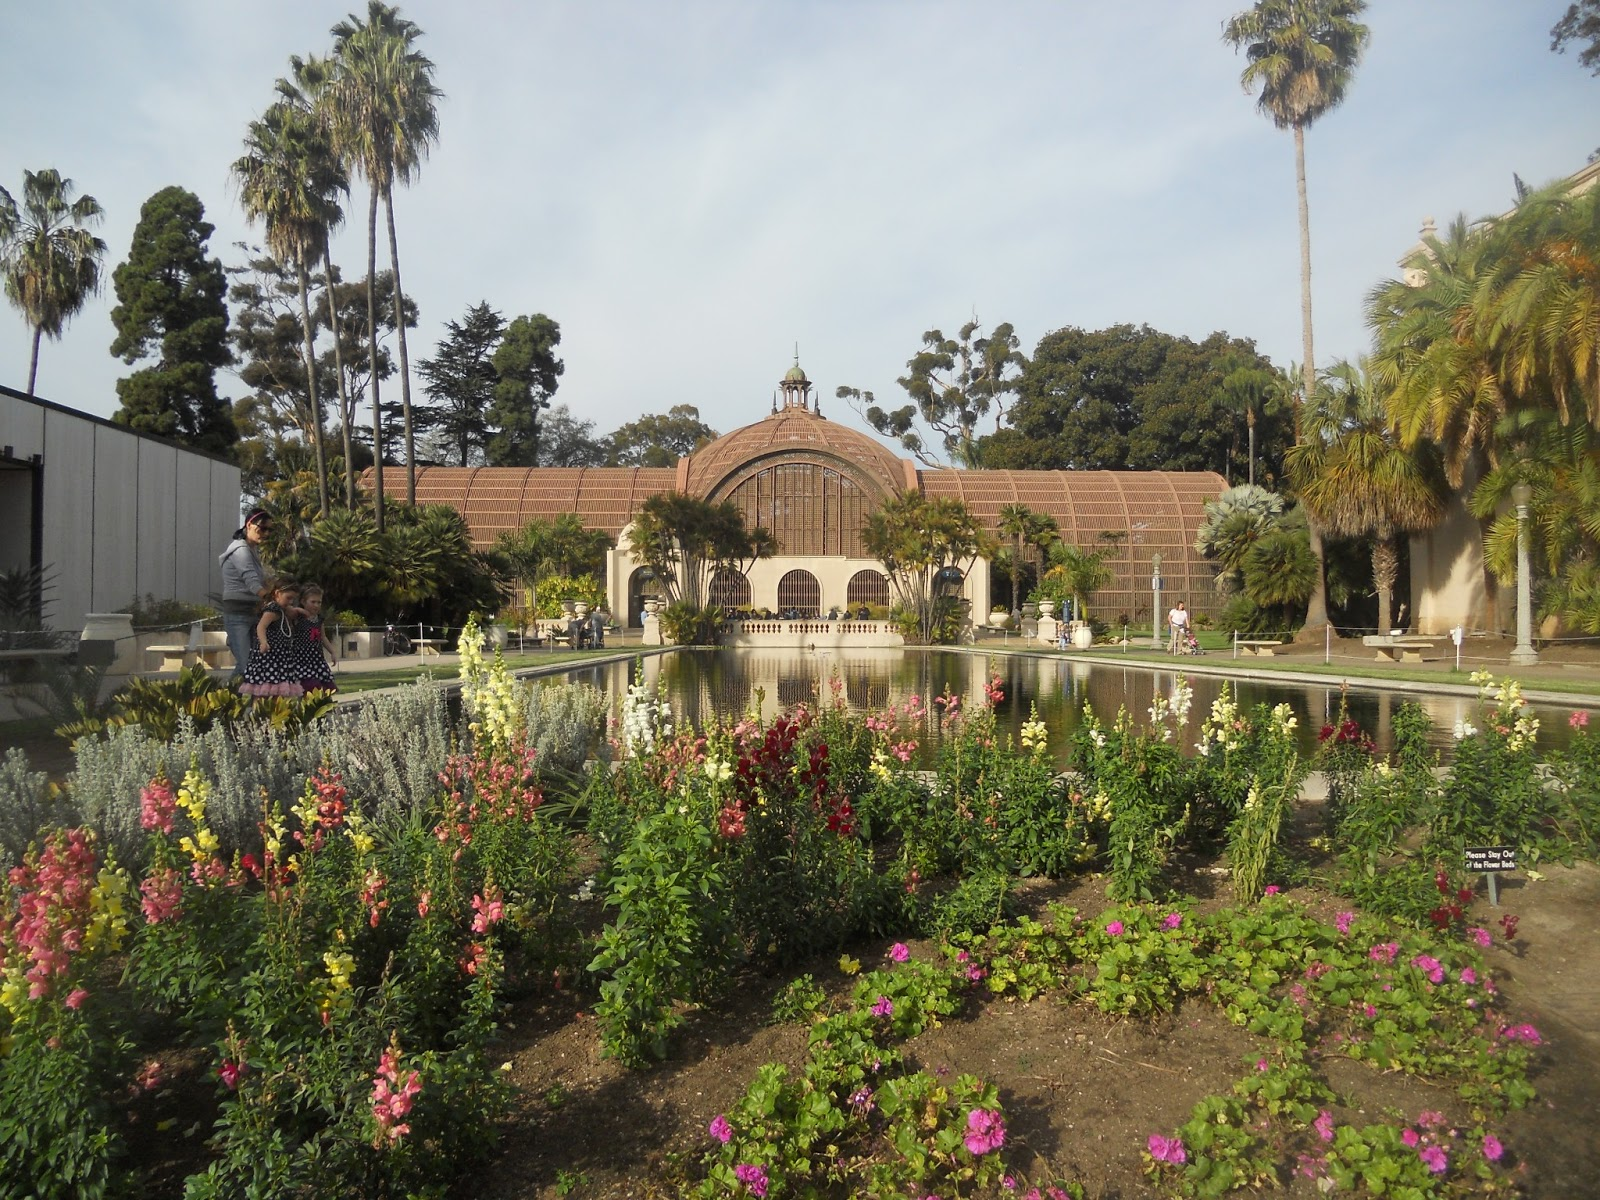 vicarious travelling: California - Balboa Park